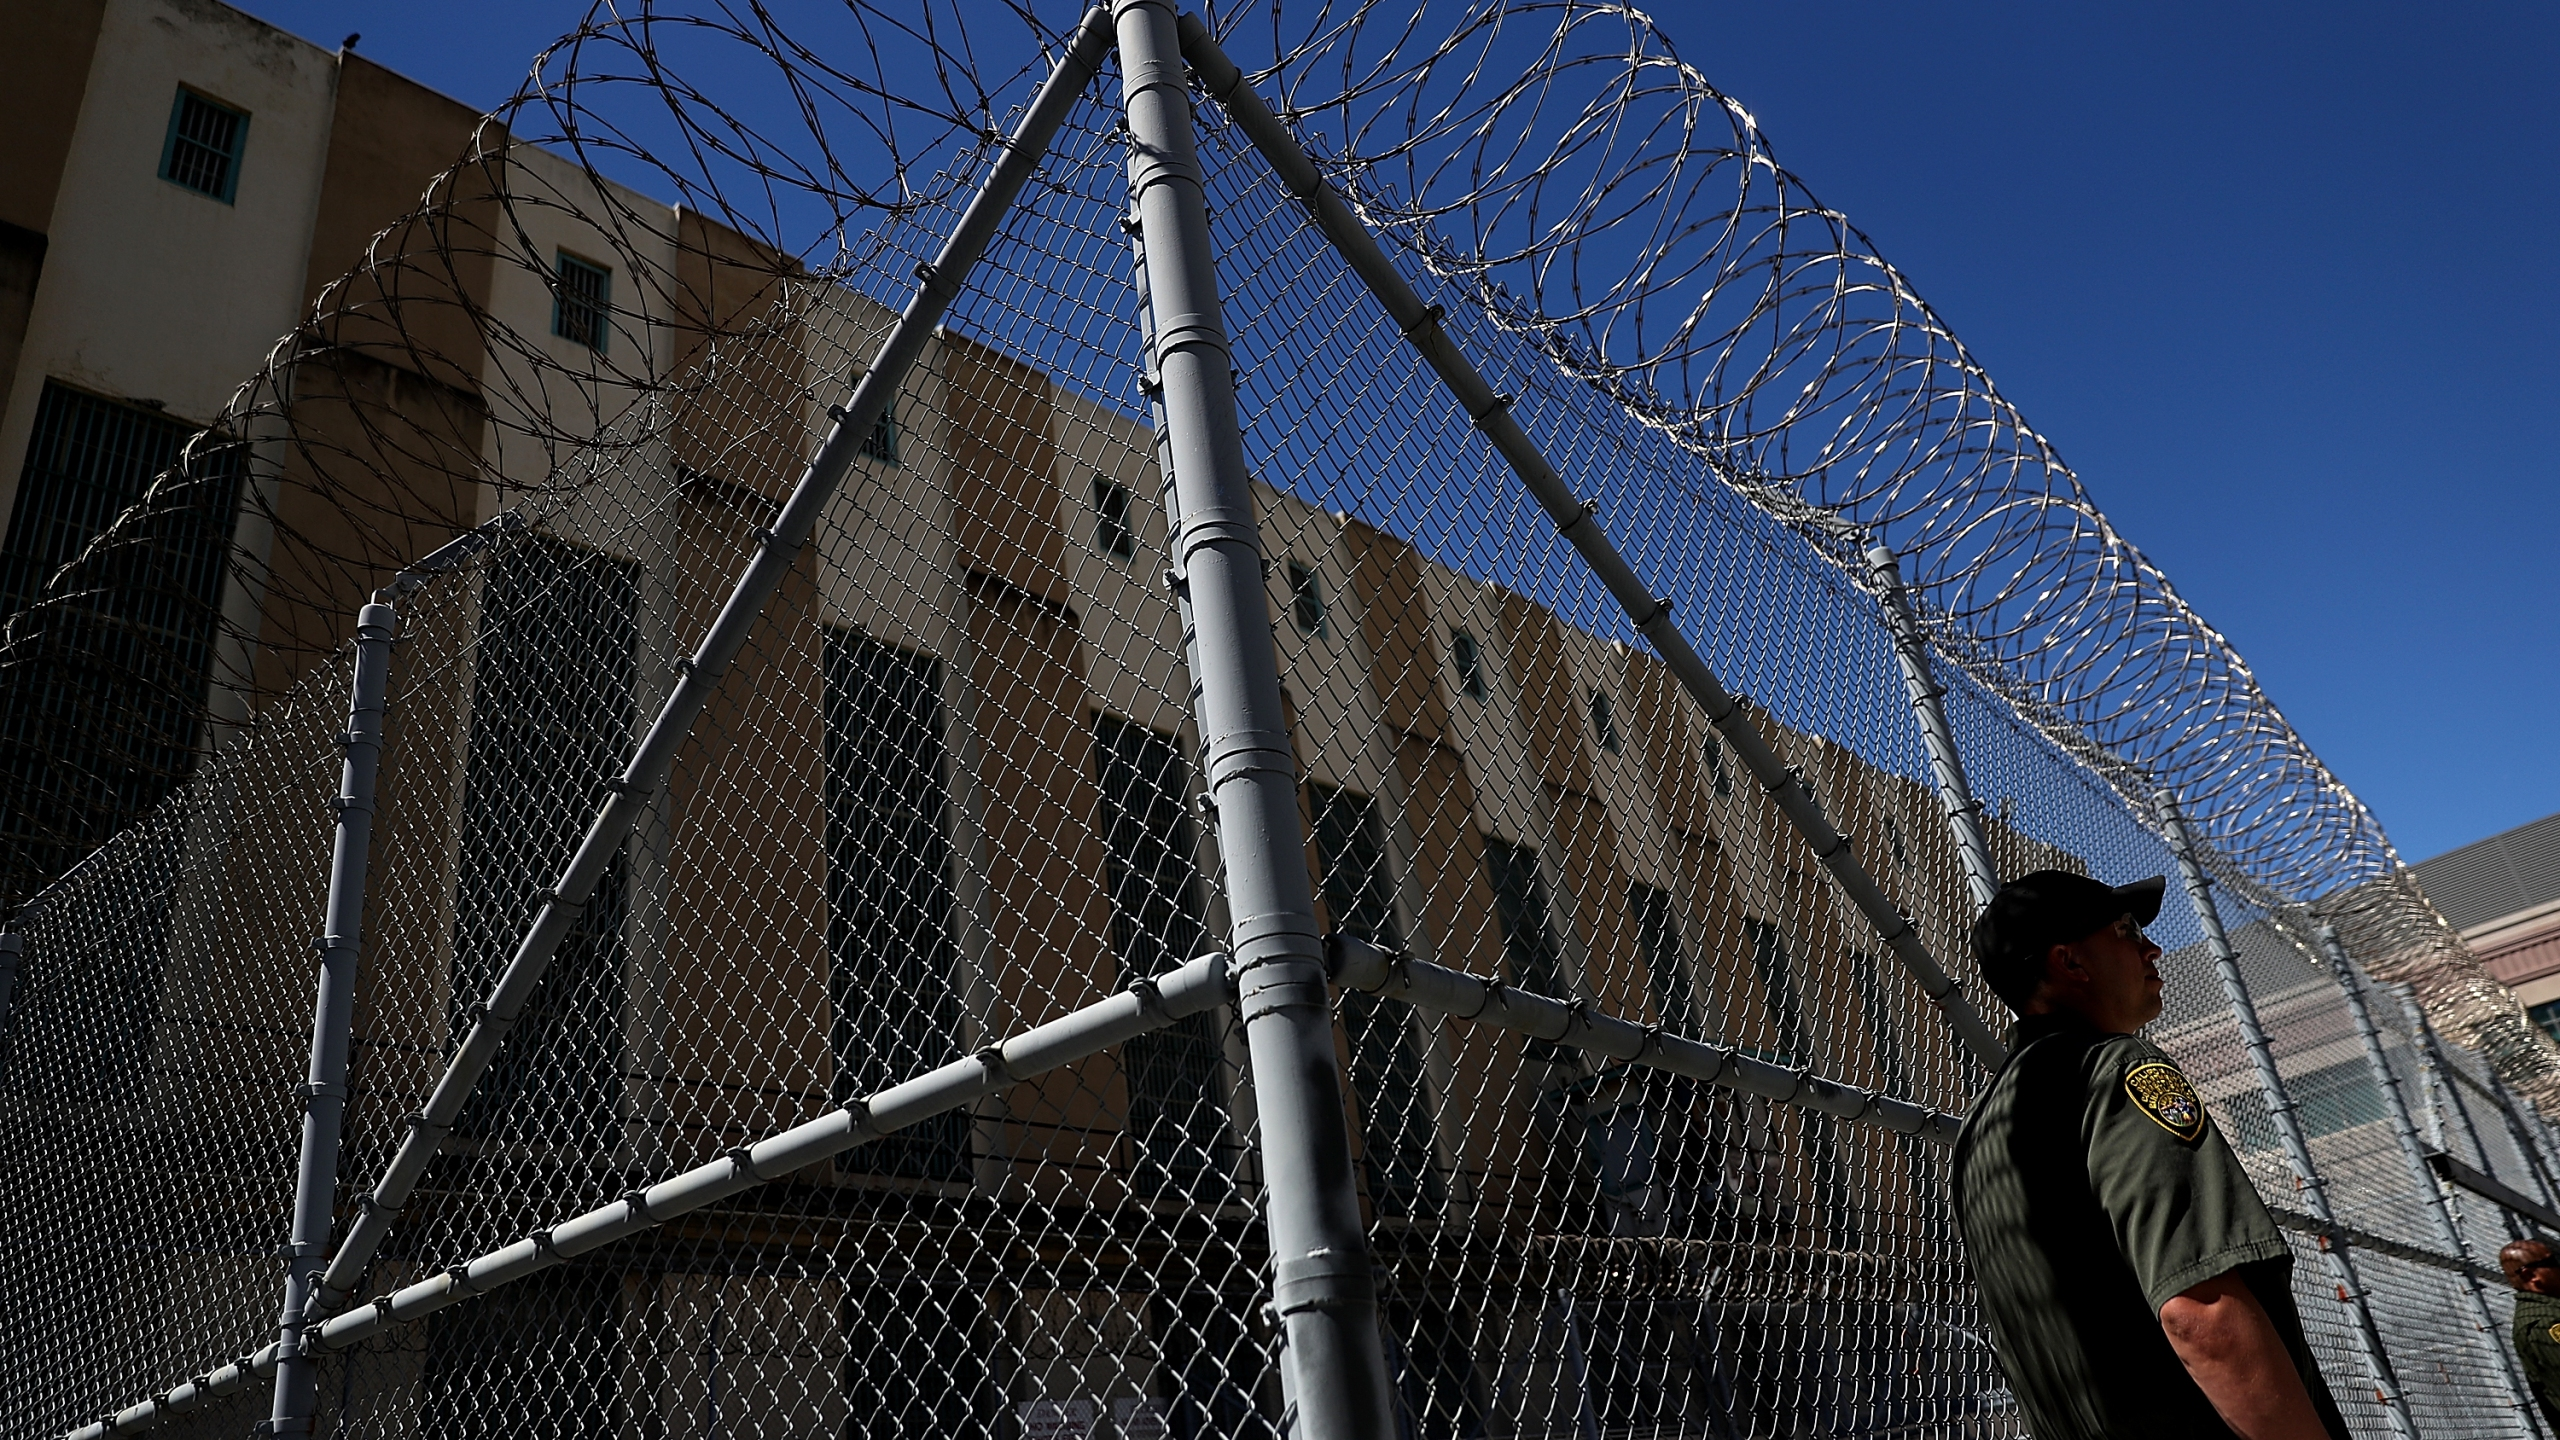 An armed California Department of Corrections and Rehabilitation officer stands guard at San Quentin State Prison's death row on Aug. 15, 2016. (Credit: Justin Sullivan / Getty Images)